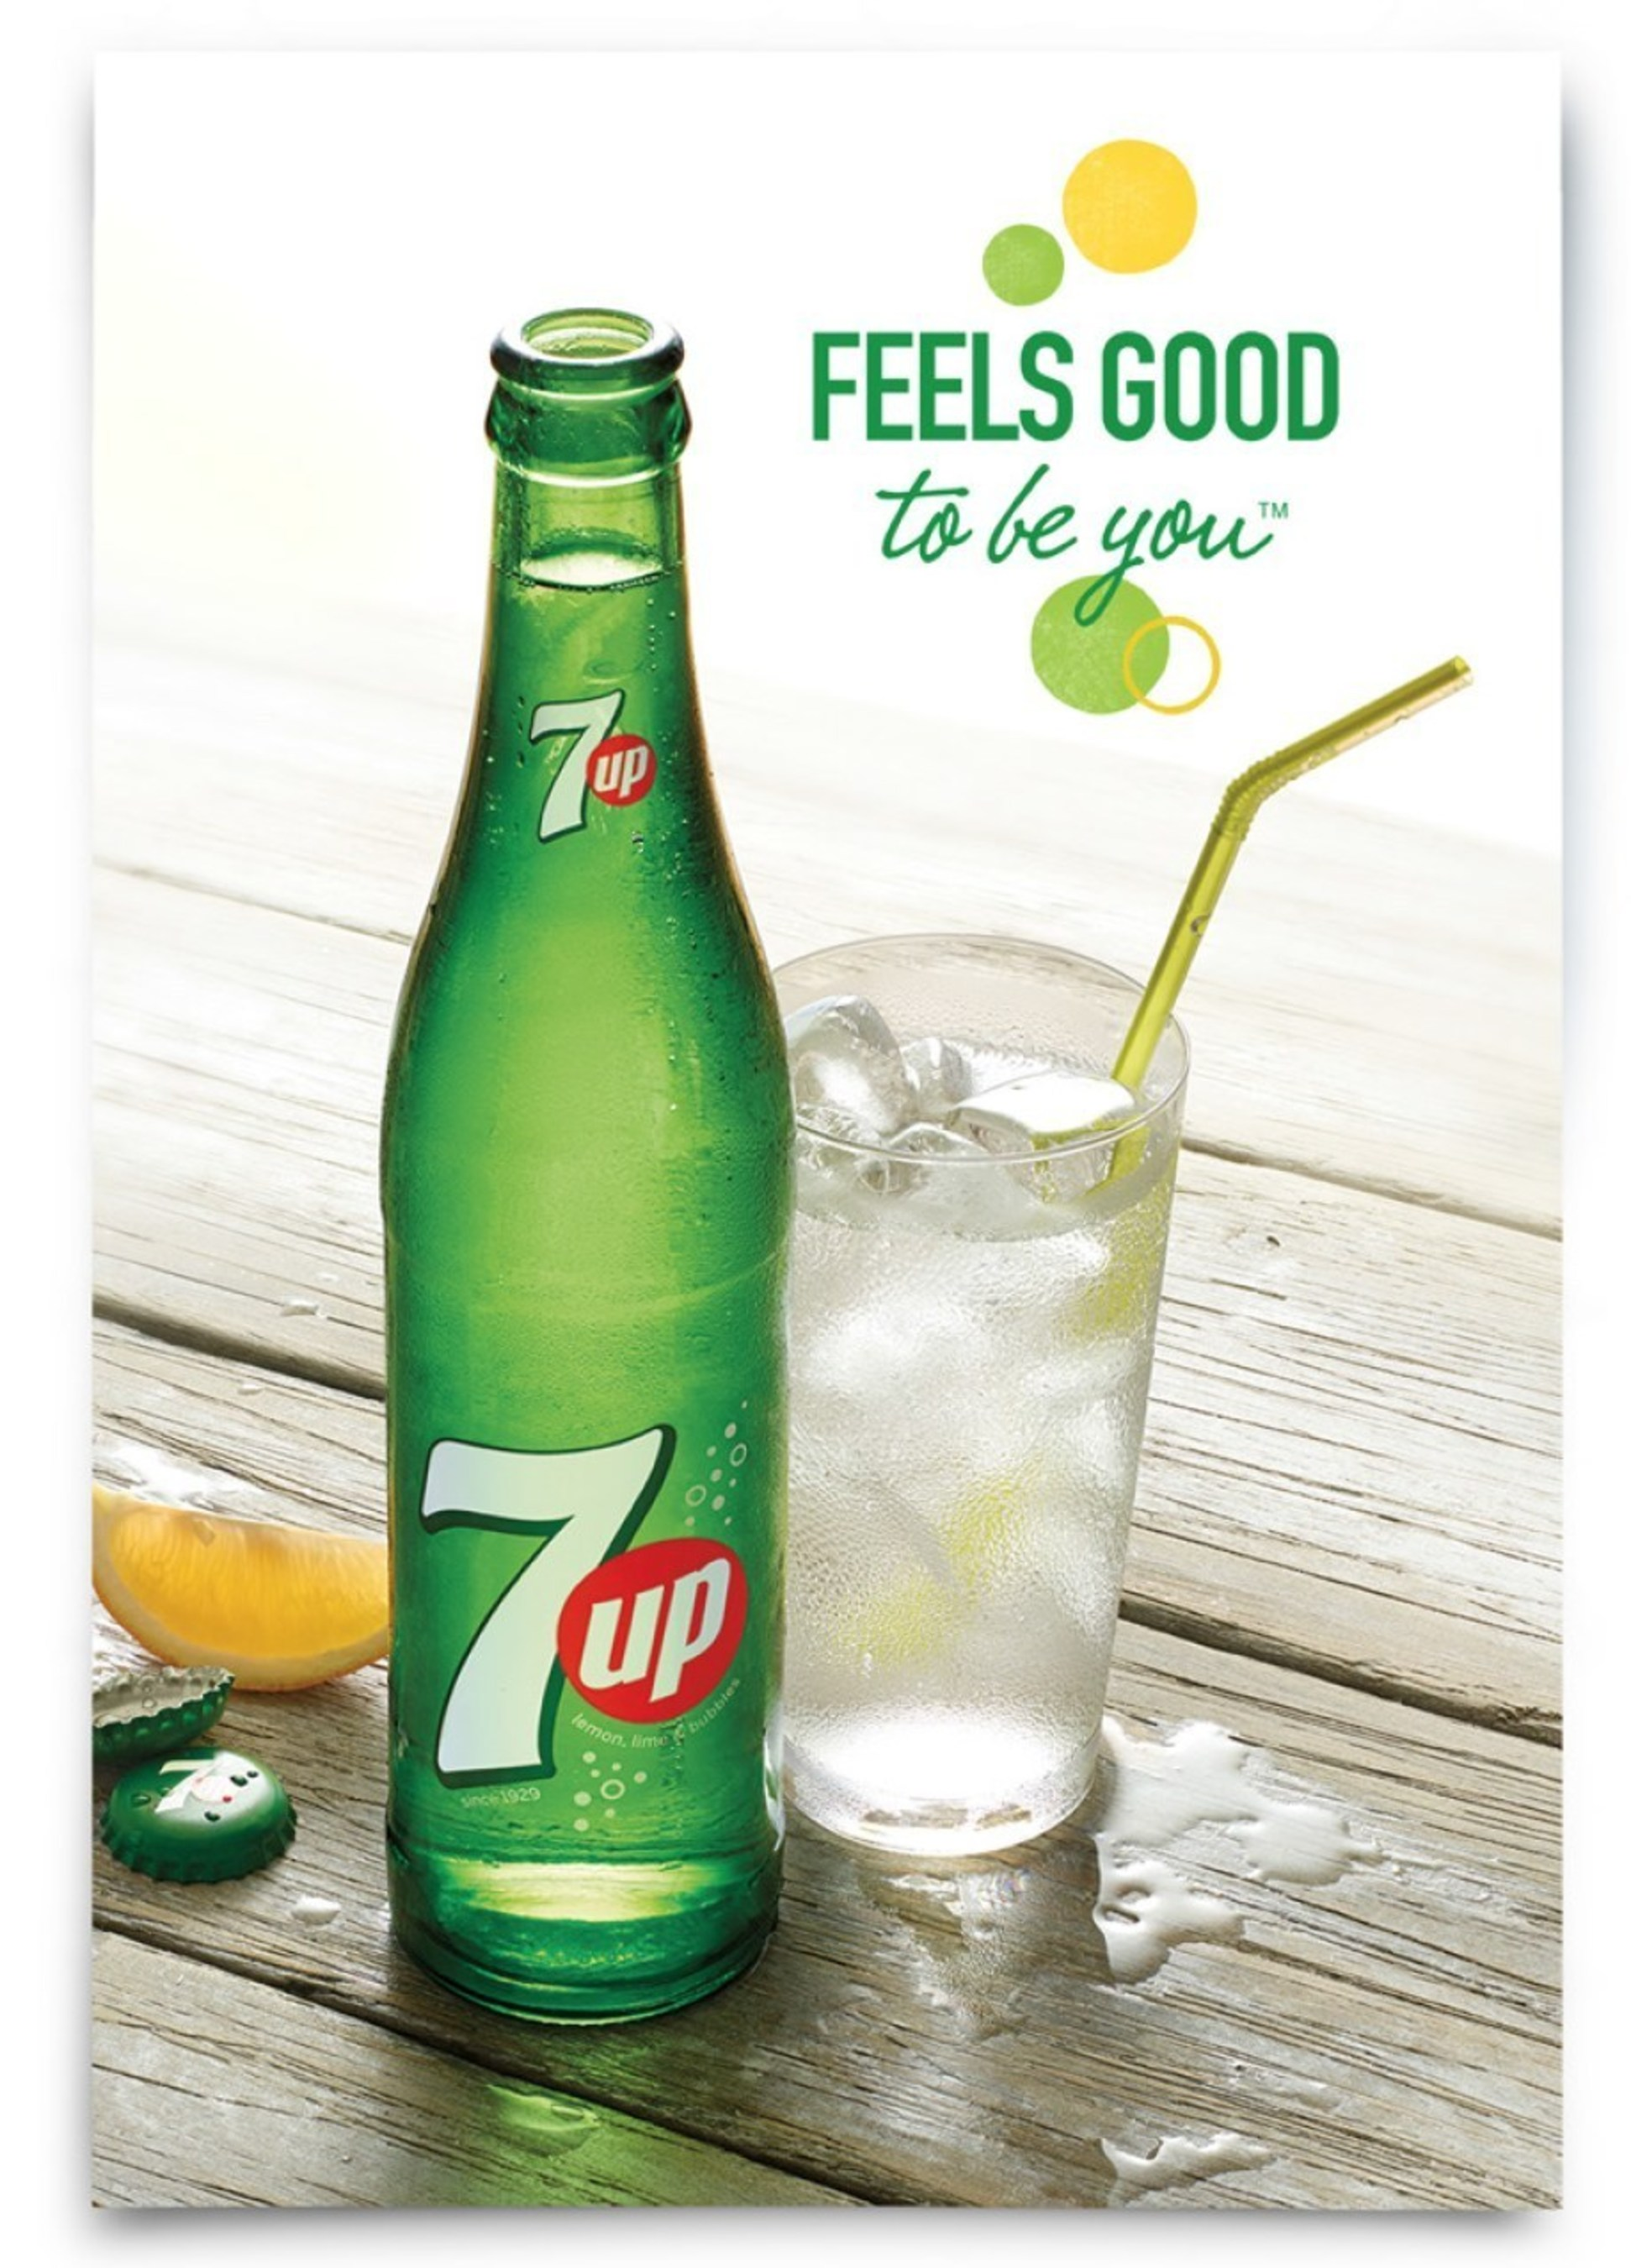 7up(R) ushers in refreshing new era with new visual identity and global campaign celebrating up & coming originals. #FeelsGoodToBeYou.